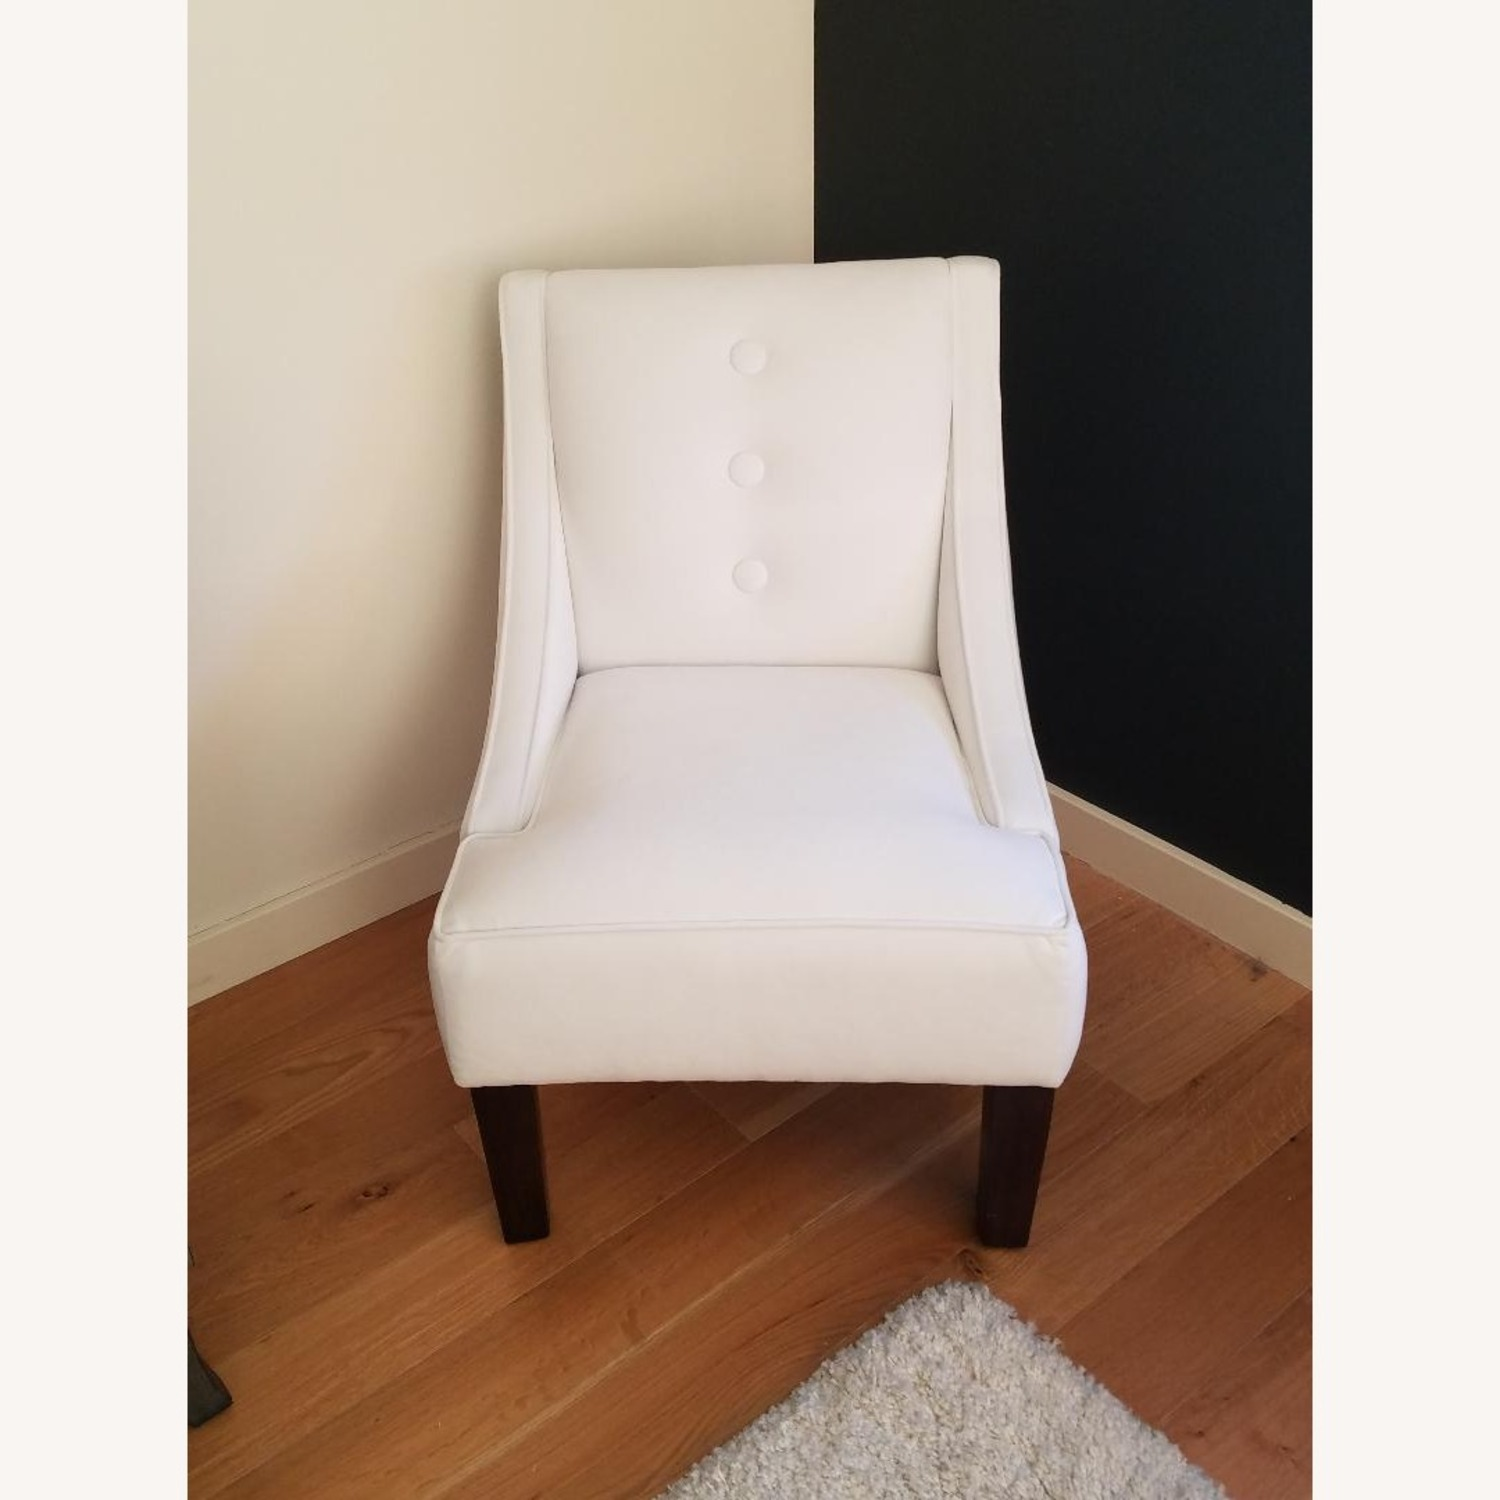 CISCO Brothers Sleek Accent Chair - image-1